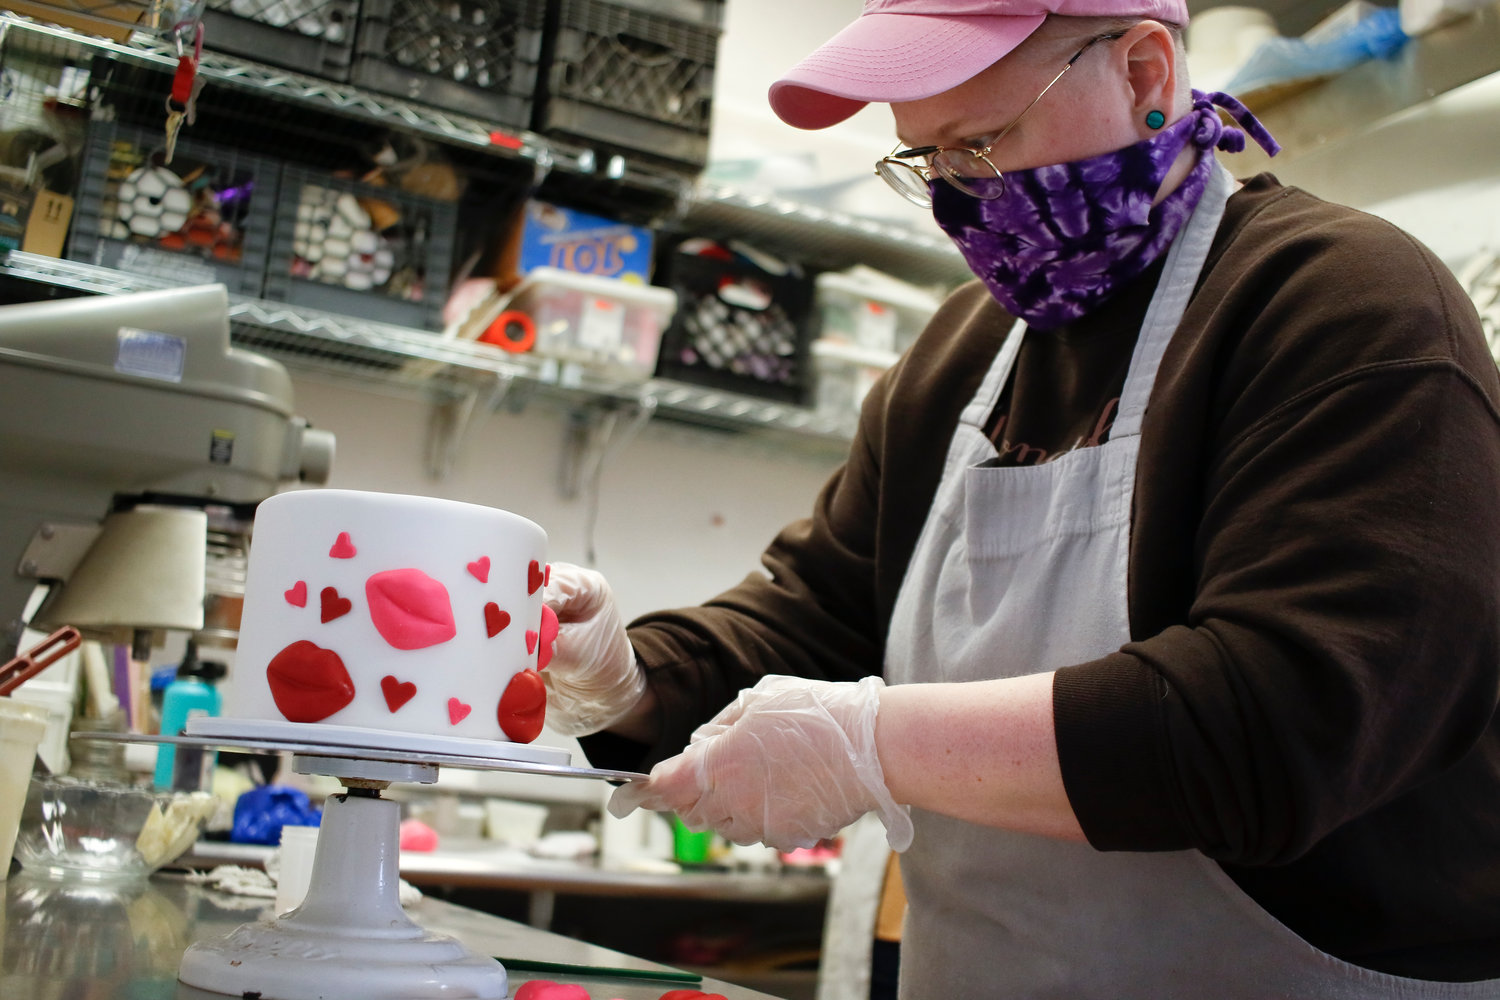 Kristan Newman, the co-owner of Wonderful Wedding Cakes, puts the finishing touches on a cake that was for Valentine's Day as well as a birthday.